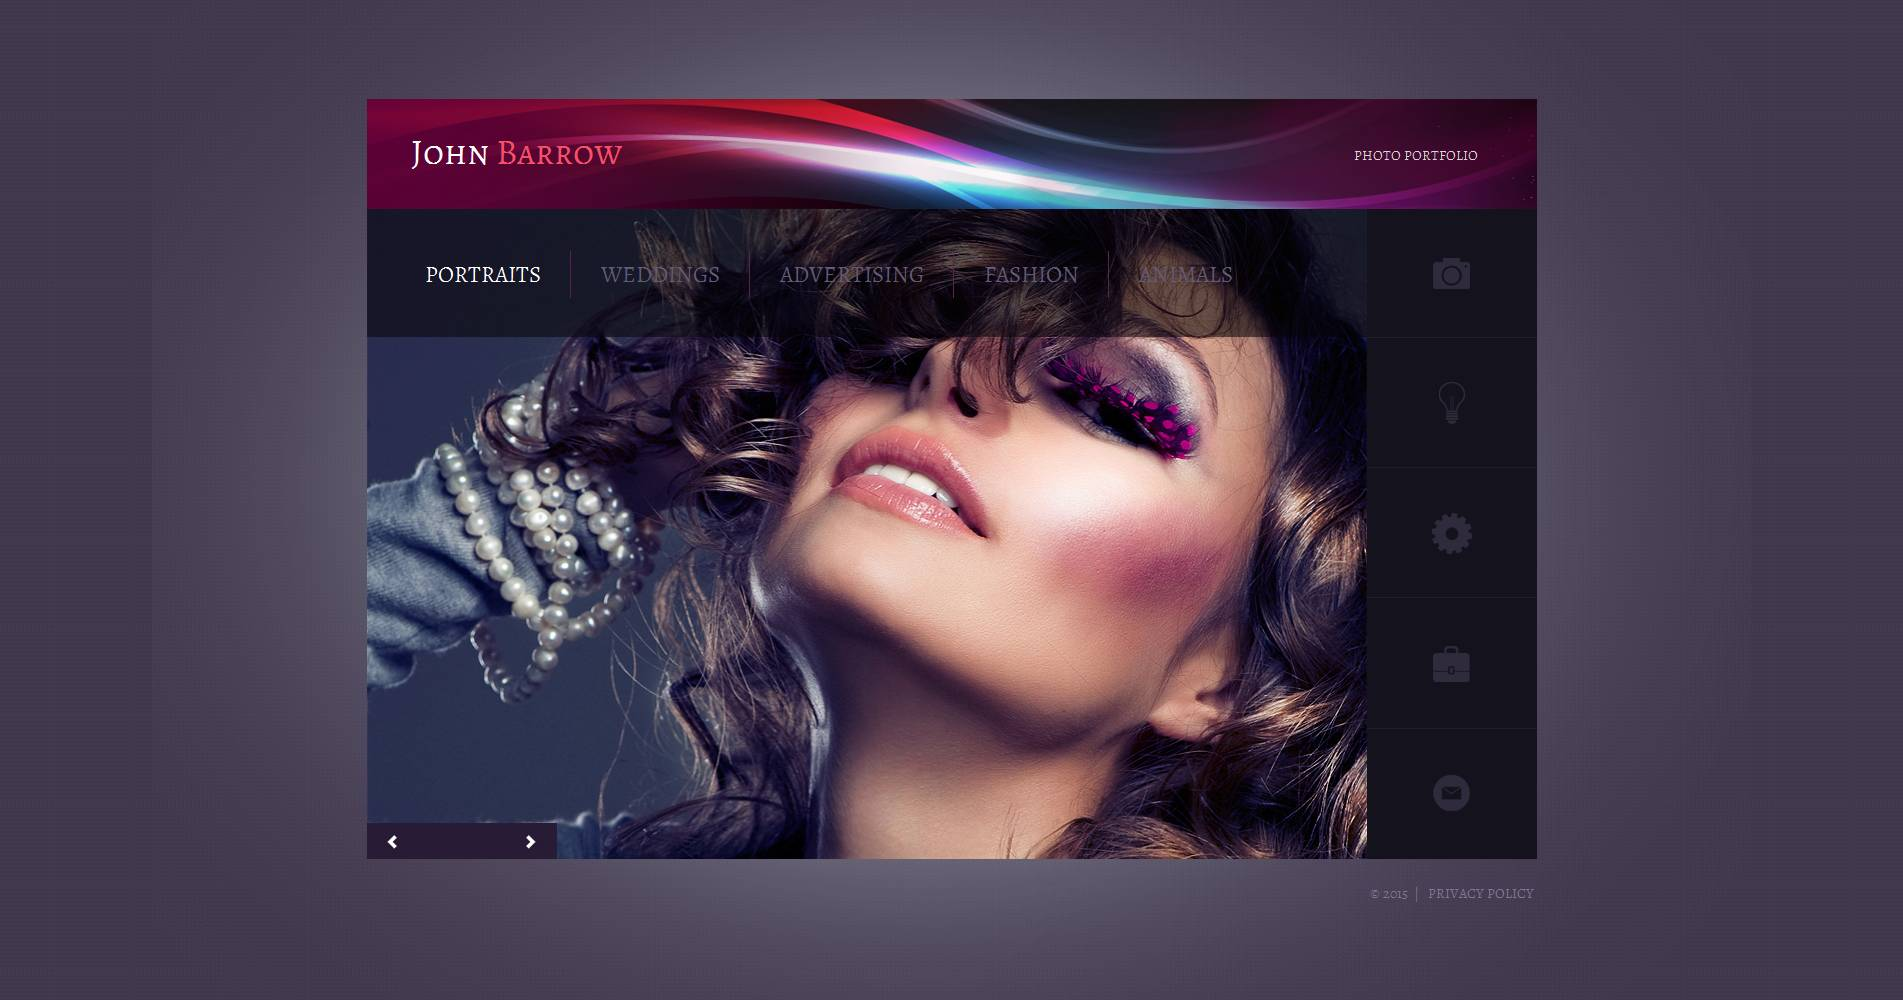 The John Barrow Fashion Photo Gallery 3.0 Design 53069, one of the best Photo Gallery templates of its kind (personal pages), also known as John Barrow fashion Photo Gallery template, style Photo Gallery template, fashion Photo Gallery template, beauty Photo Gallery template, news Photo Gallery template, styles Photo Gallery template, brands Photo Gallery template, trends designers Photo Gallery template, models Photo Gallery template, fashion Photo Gallery template, shows Photo Gallery template, collections and related with John Barrow fashion, style, fashion, beauty, news, styles, brands, trends designers, models, fashion, shows, collections, etc.